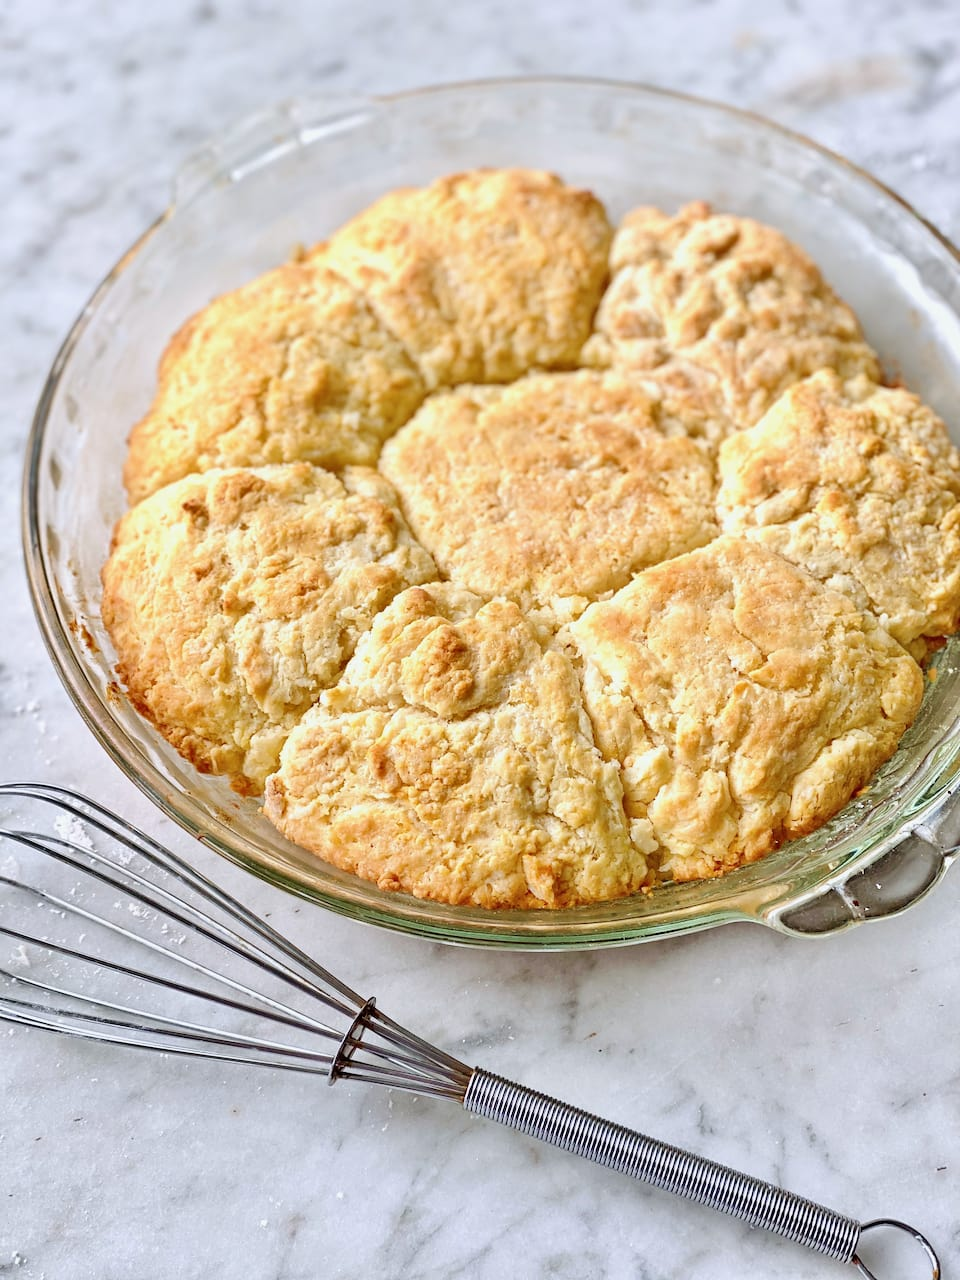 drop biscuits cooling in a glass pie plate on a white counter with a whisk beside them